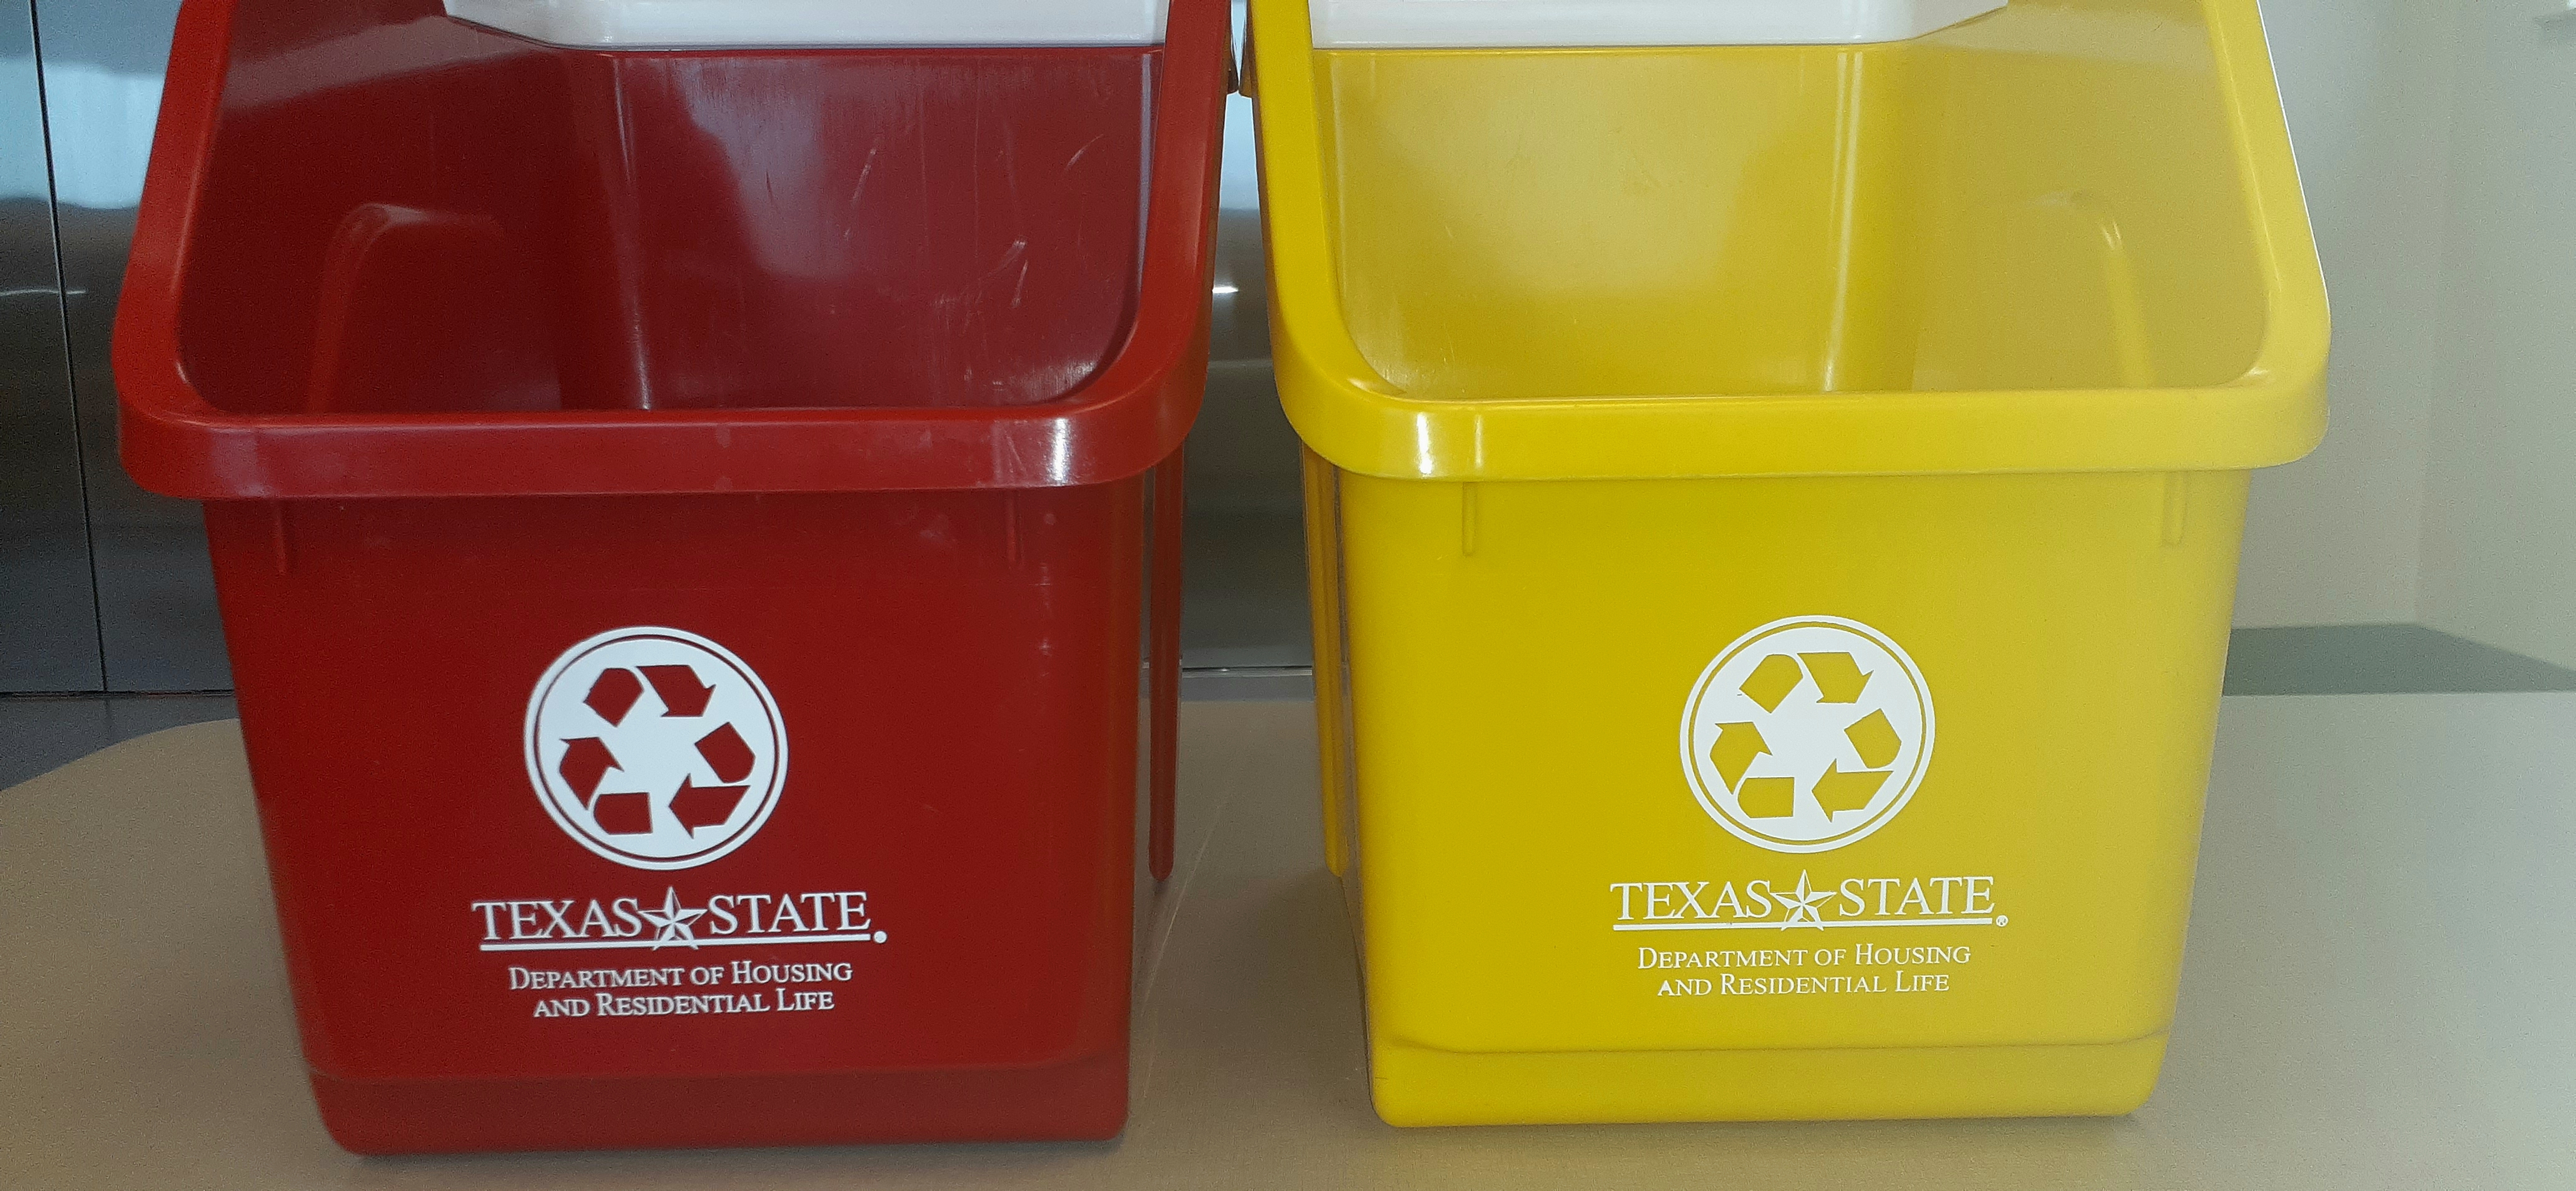 Red and yellow bins sit next to each other with the words Texas State Department of Housing and Residential Life in white letters written in the center of the bin.